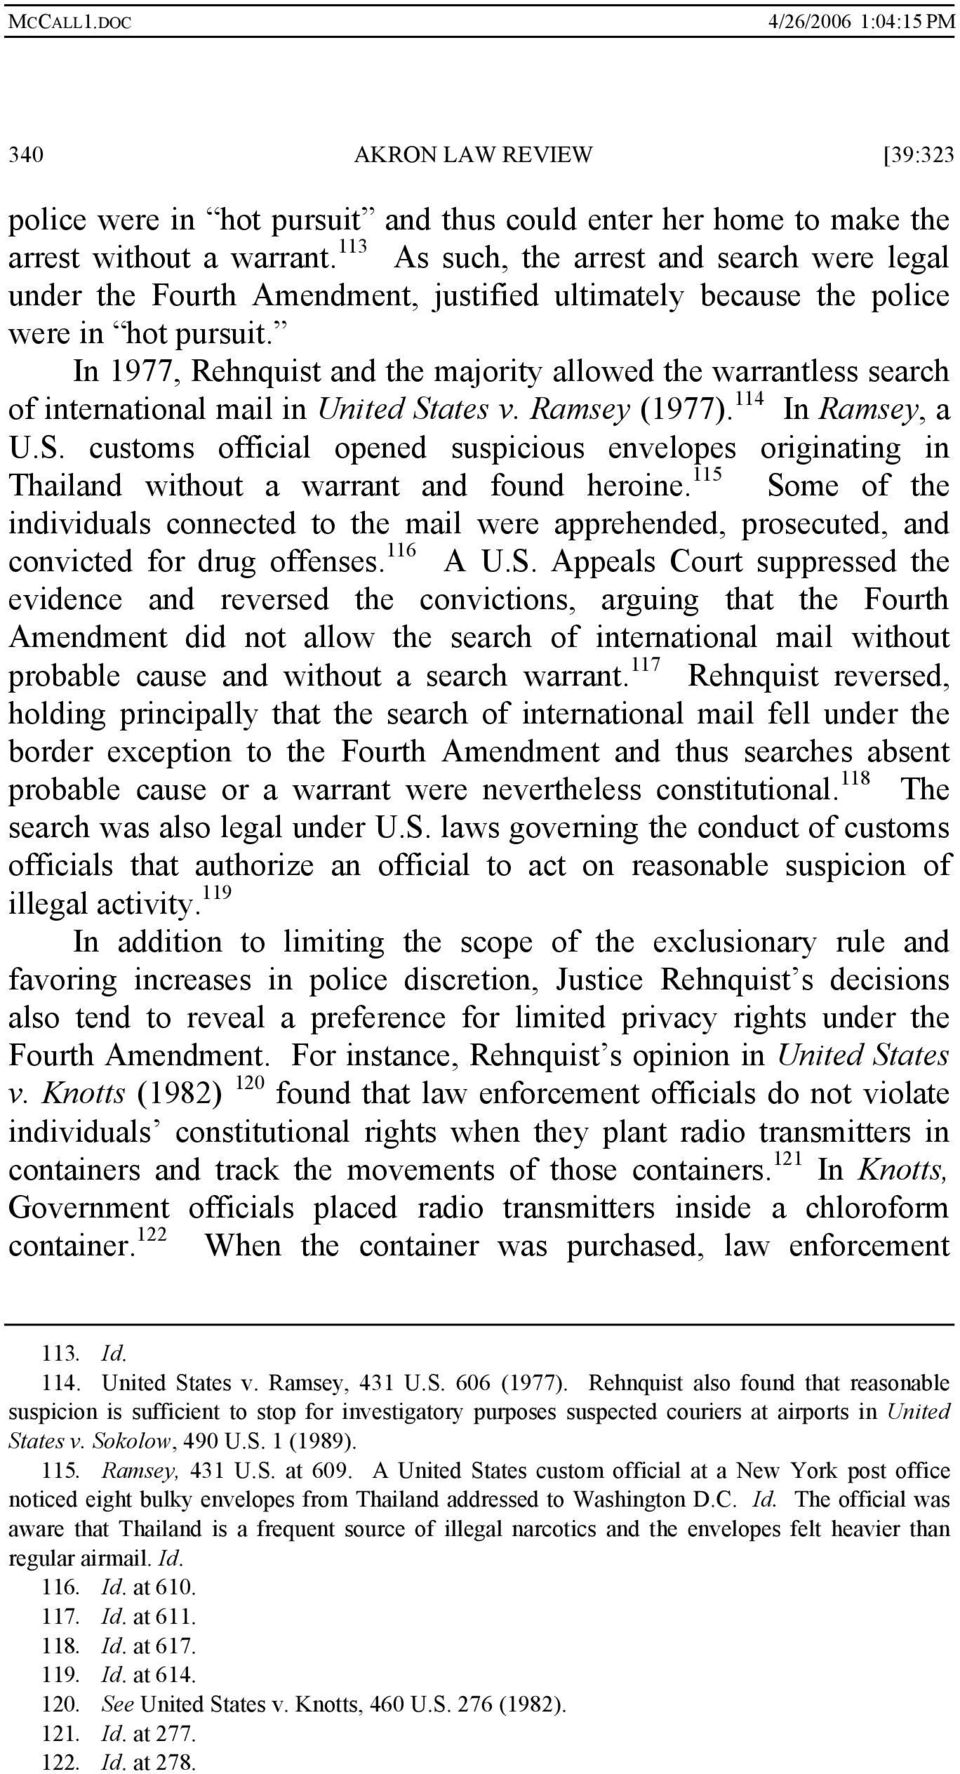 In 1977, Rehnquist and the majority allowed the warrantless search of international mail in United St